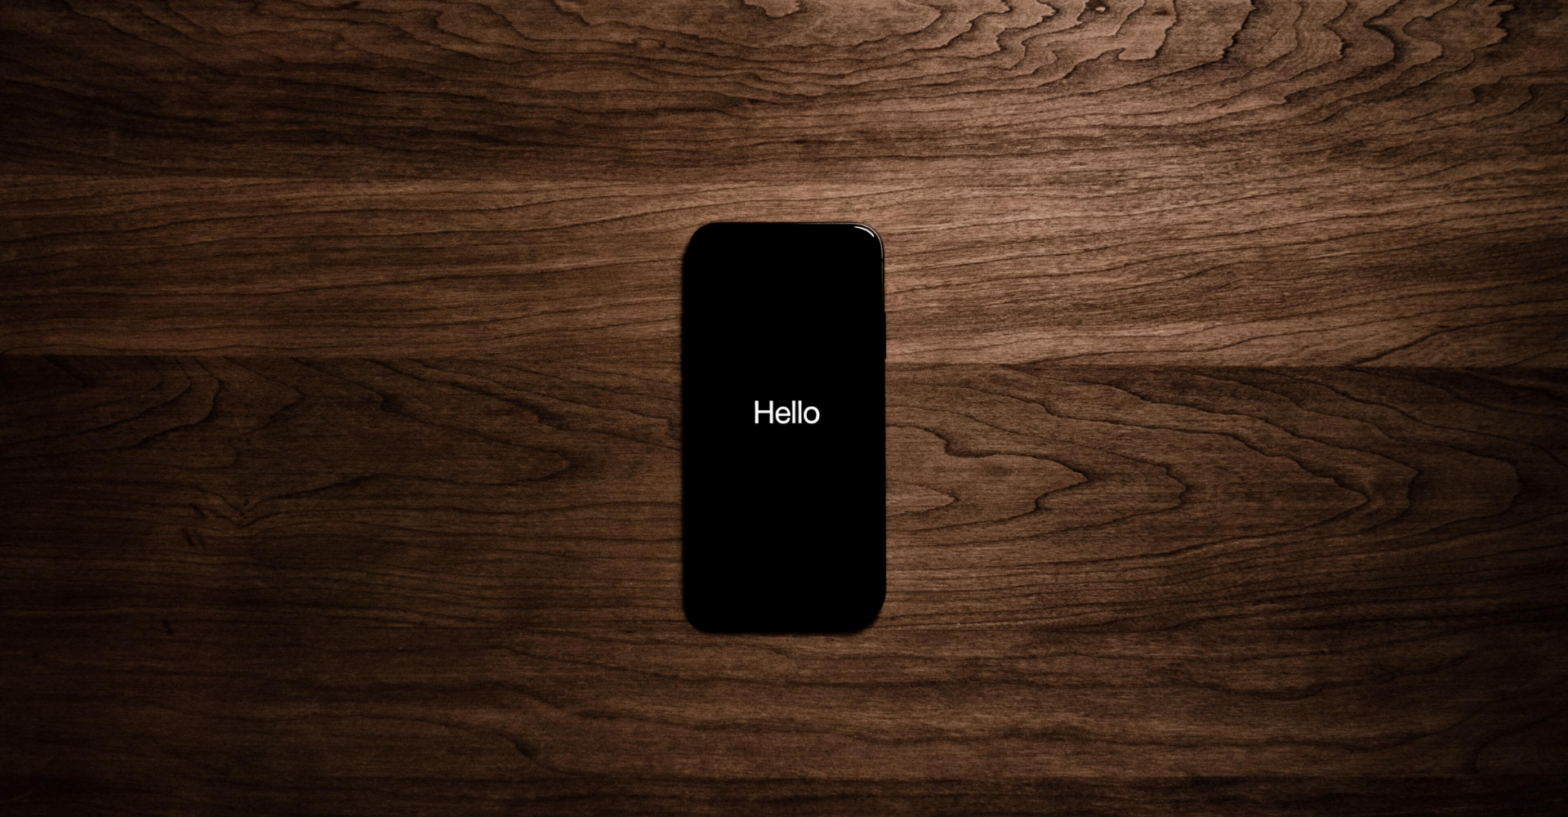 The word hello on a phone